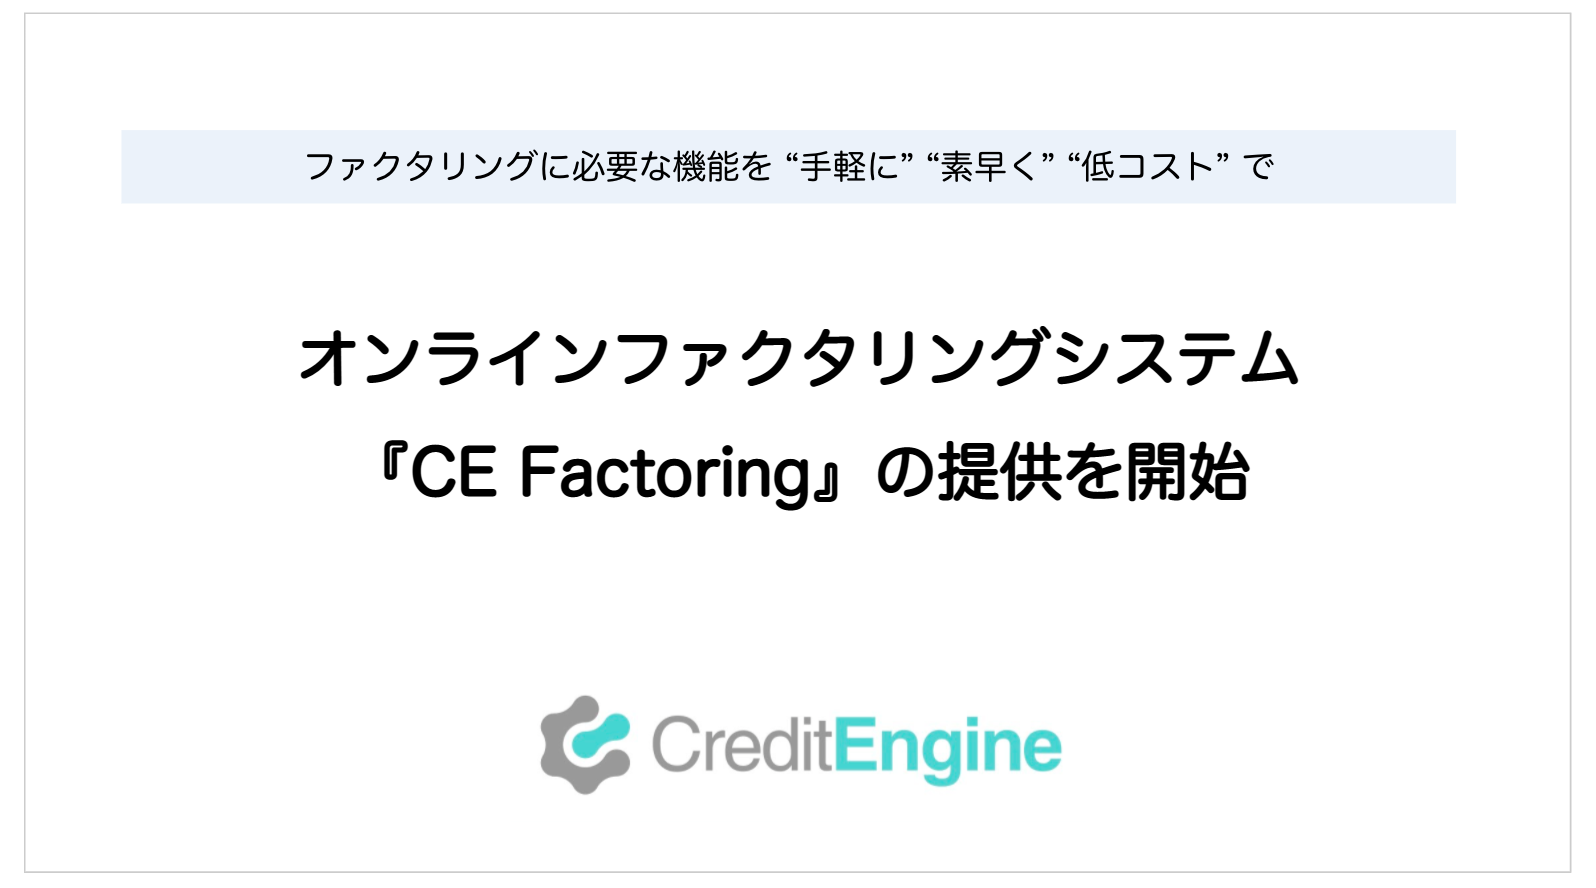 20210903_CE Factoring_image.png